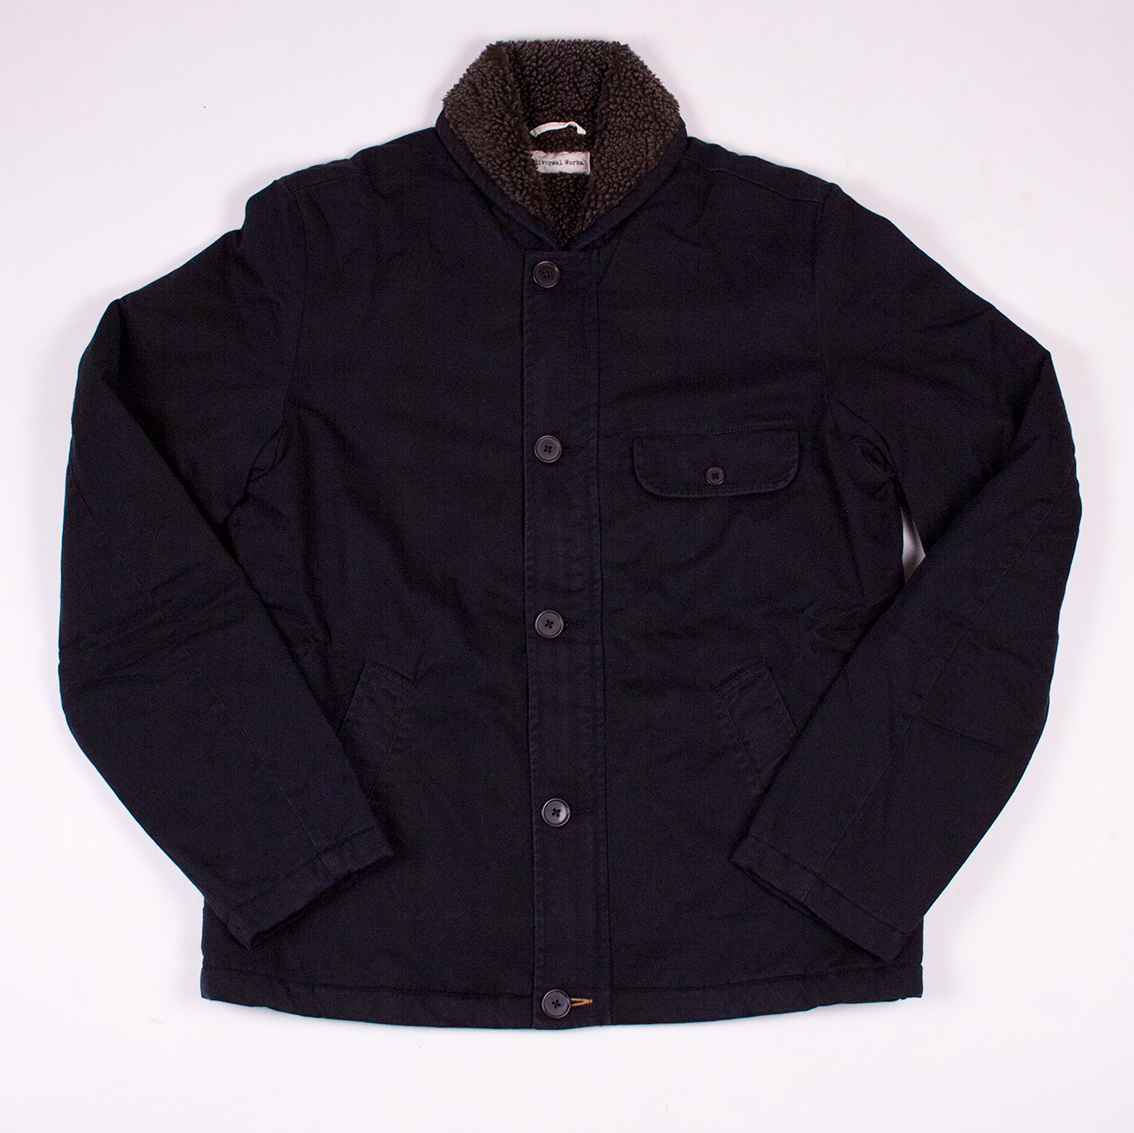 N1 deck jacket ebay